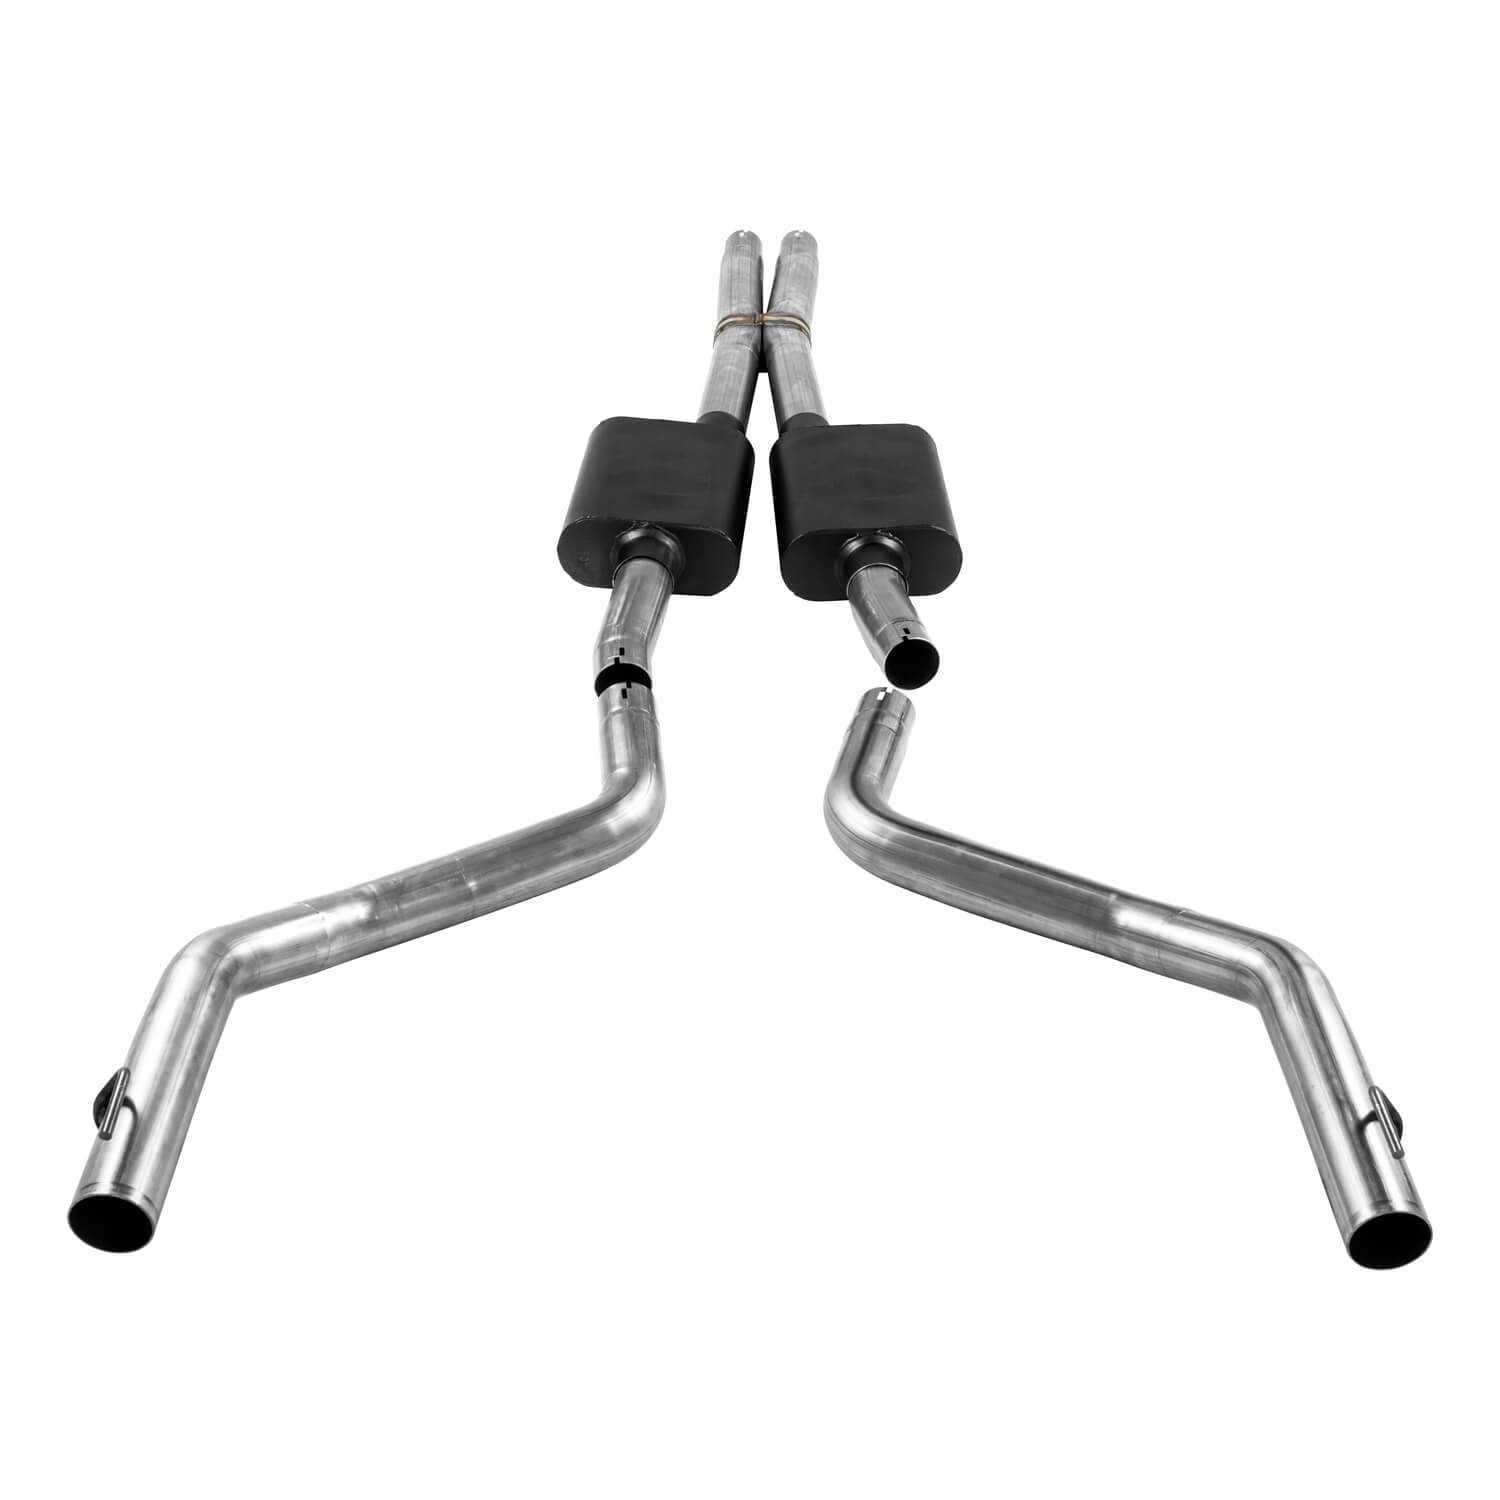 817778 Flowmaster American Thunder Cat Back Exhaust System